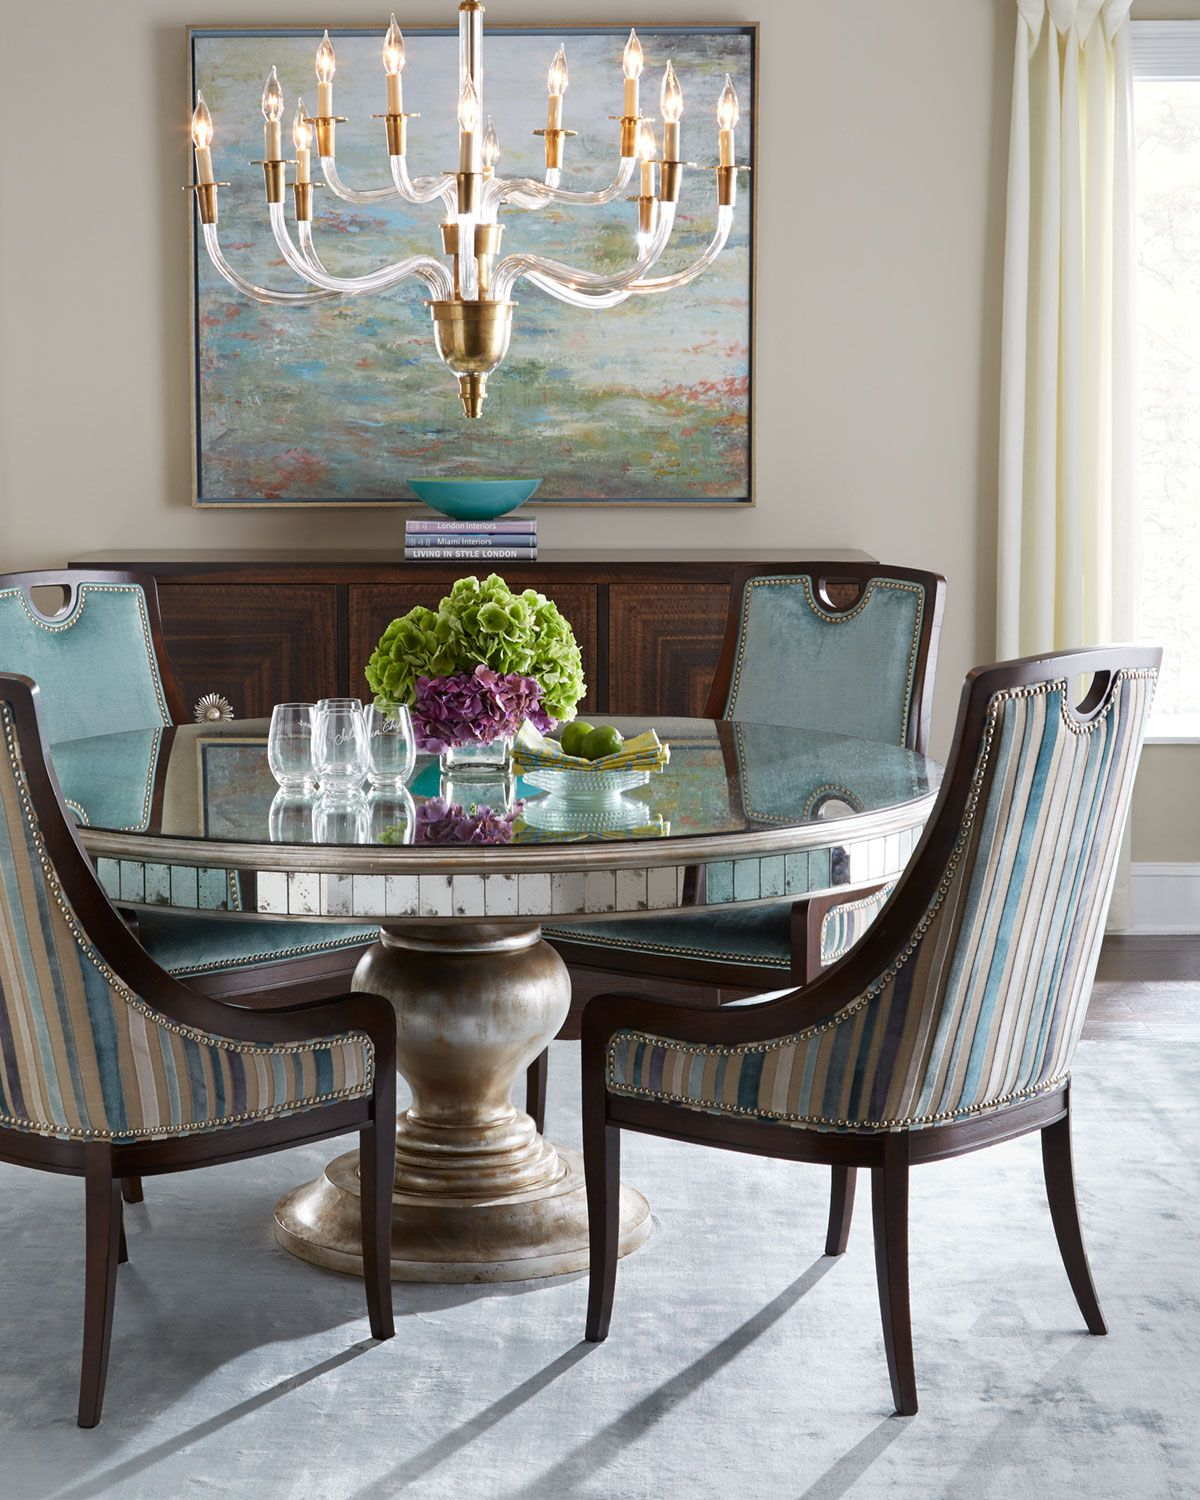 Charmant John Richard Collection Lisandra Dining Table U0026 Despina Dining Chair   Home  Decor (antique Silver, Aqua Dining Room Furniture)